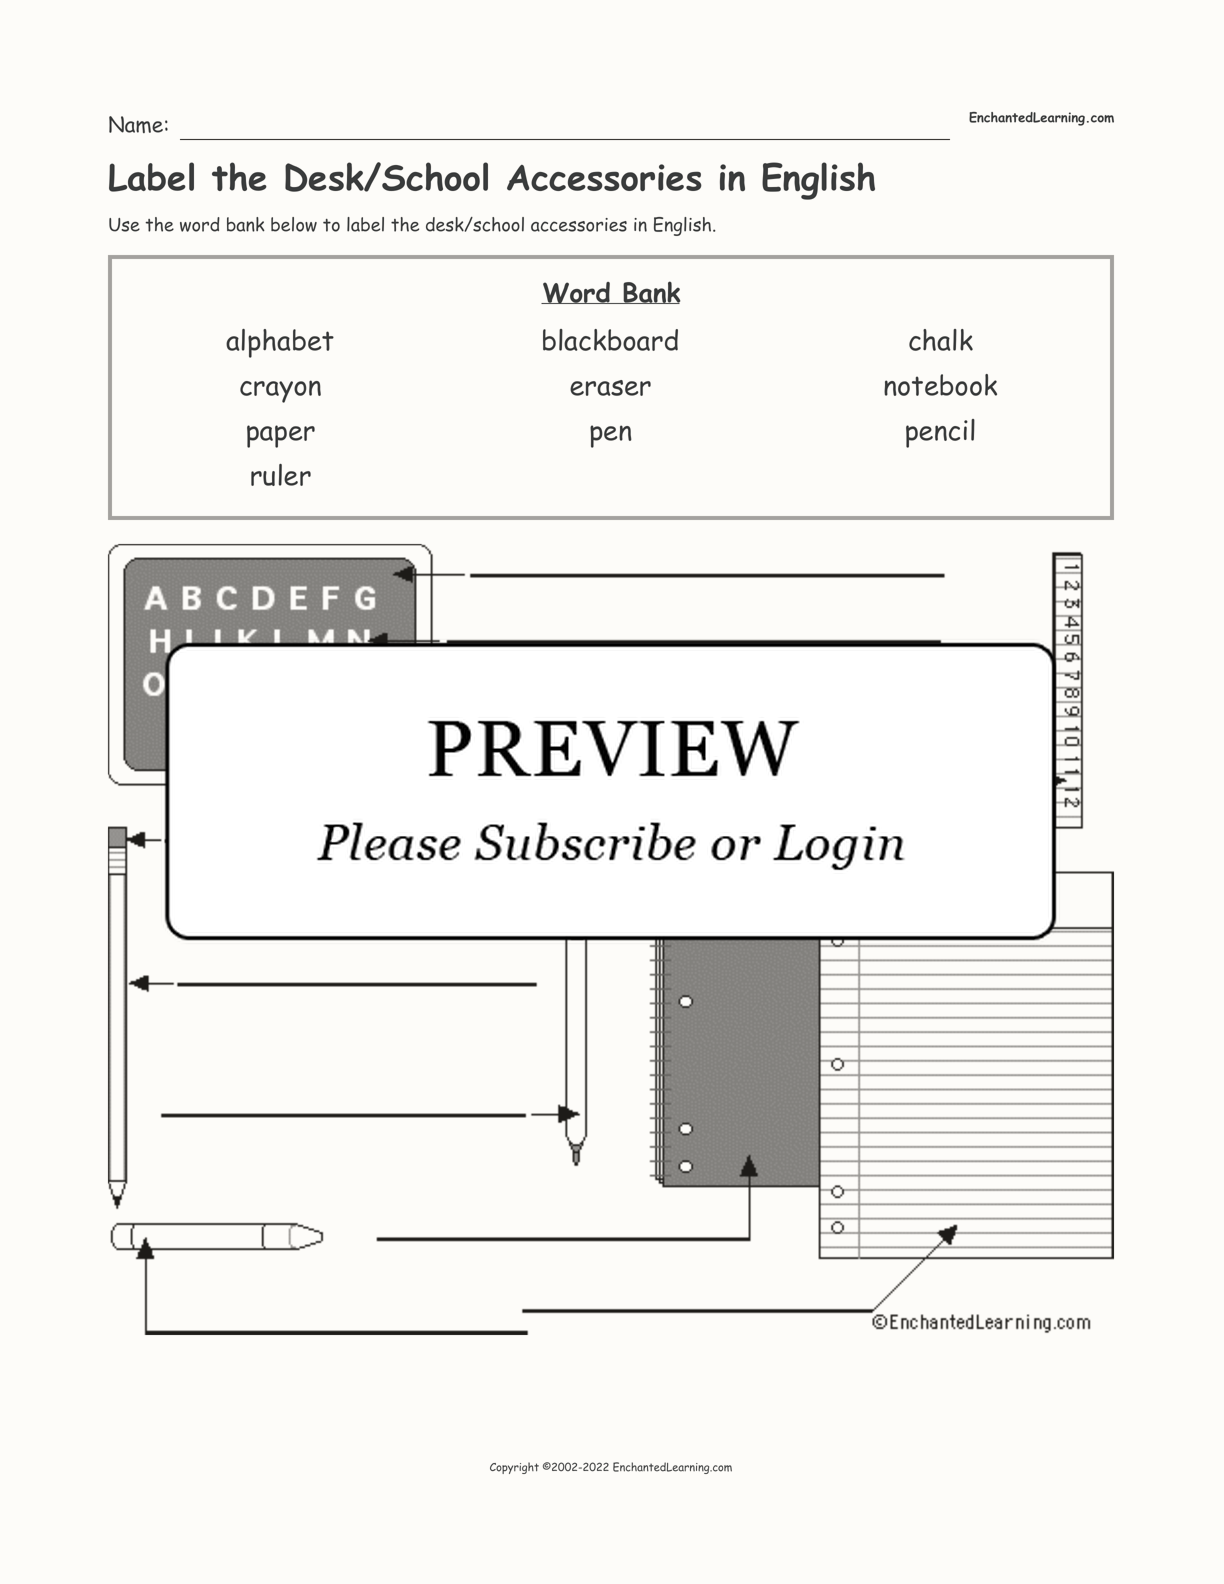 Label the Desk/School Accessories in English interactive worksheet page 1